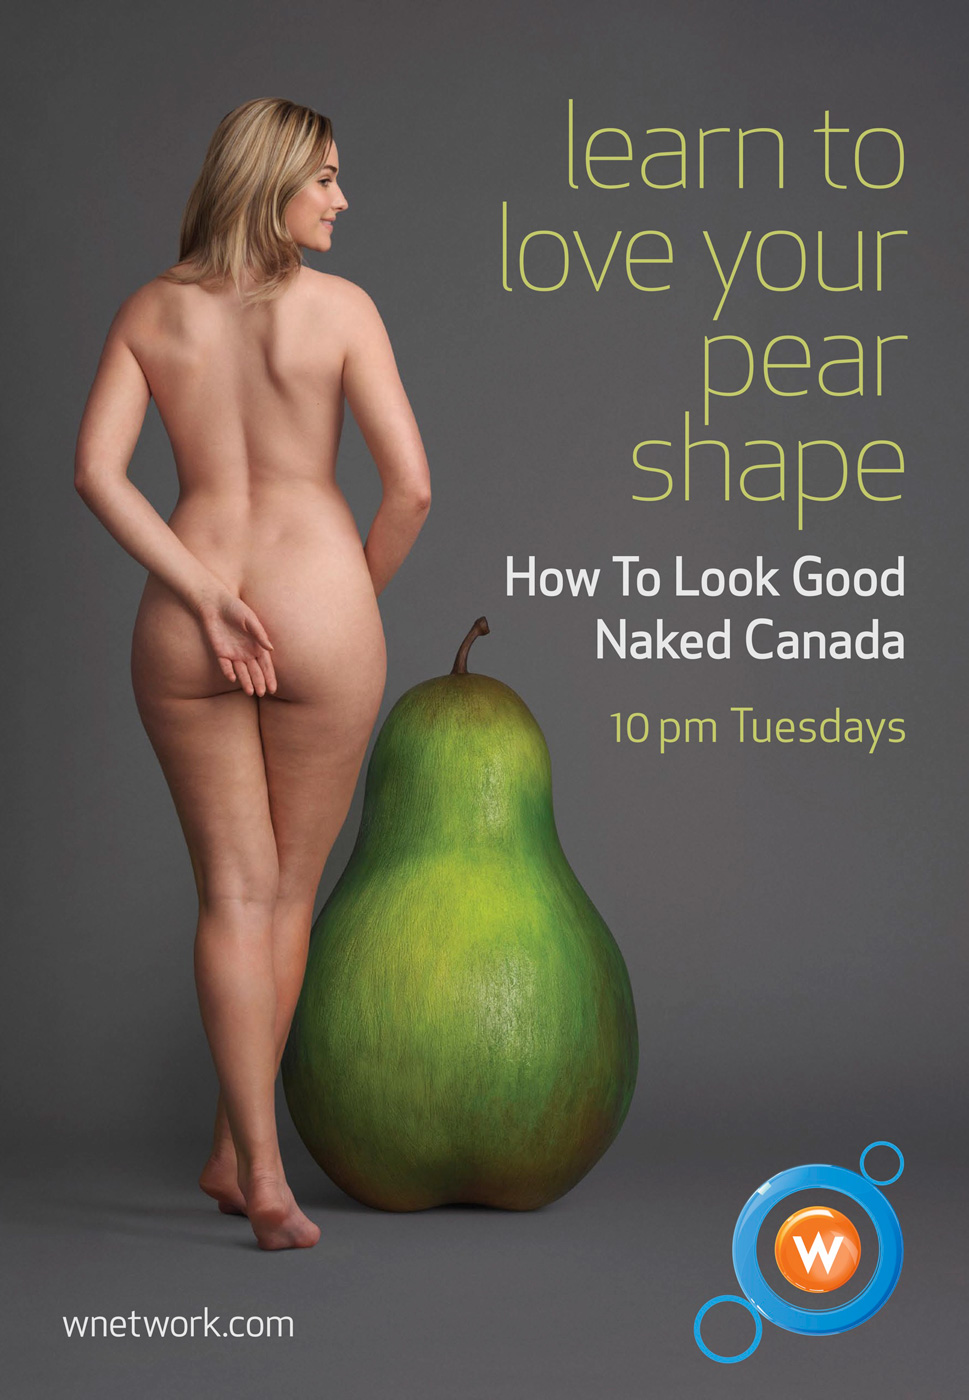 How to look good naked nude